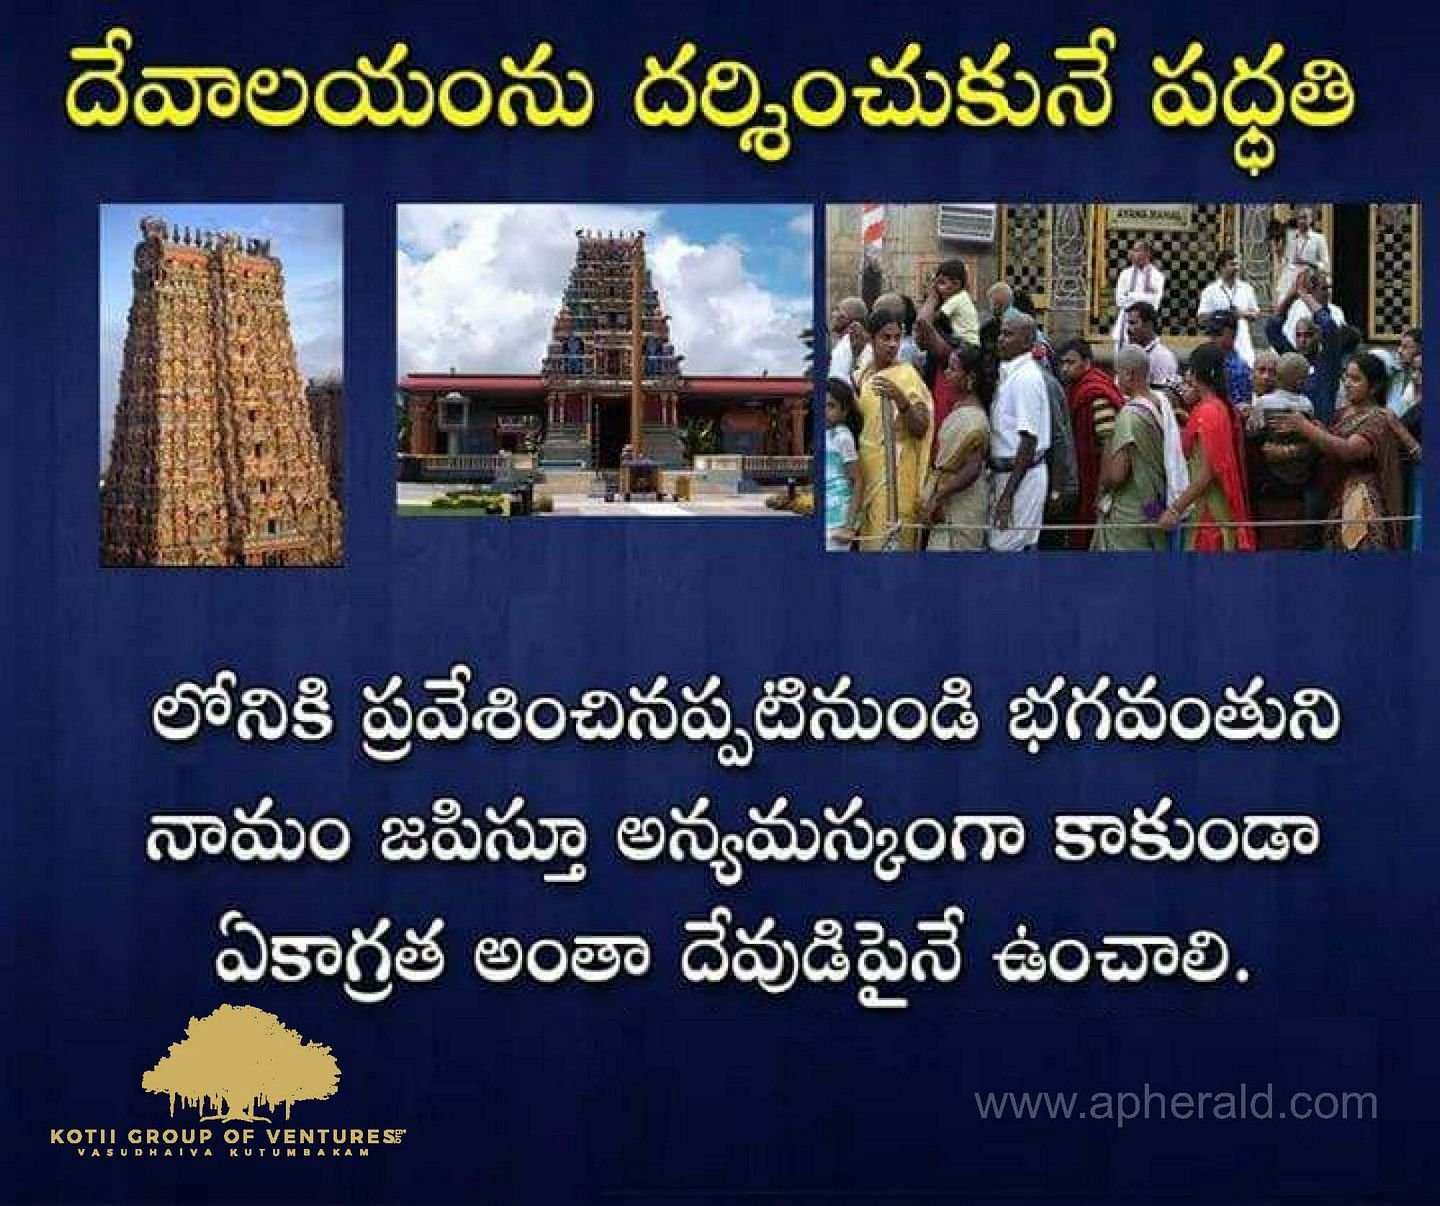 What Rules Should be Follow Hindu Temples